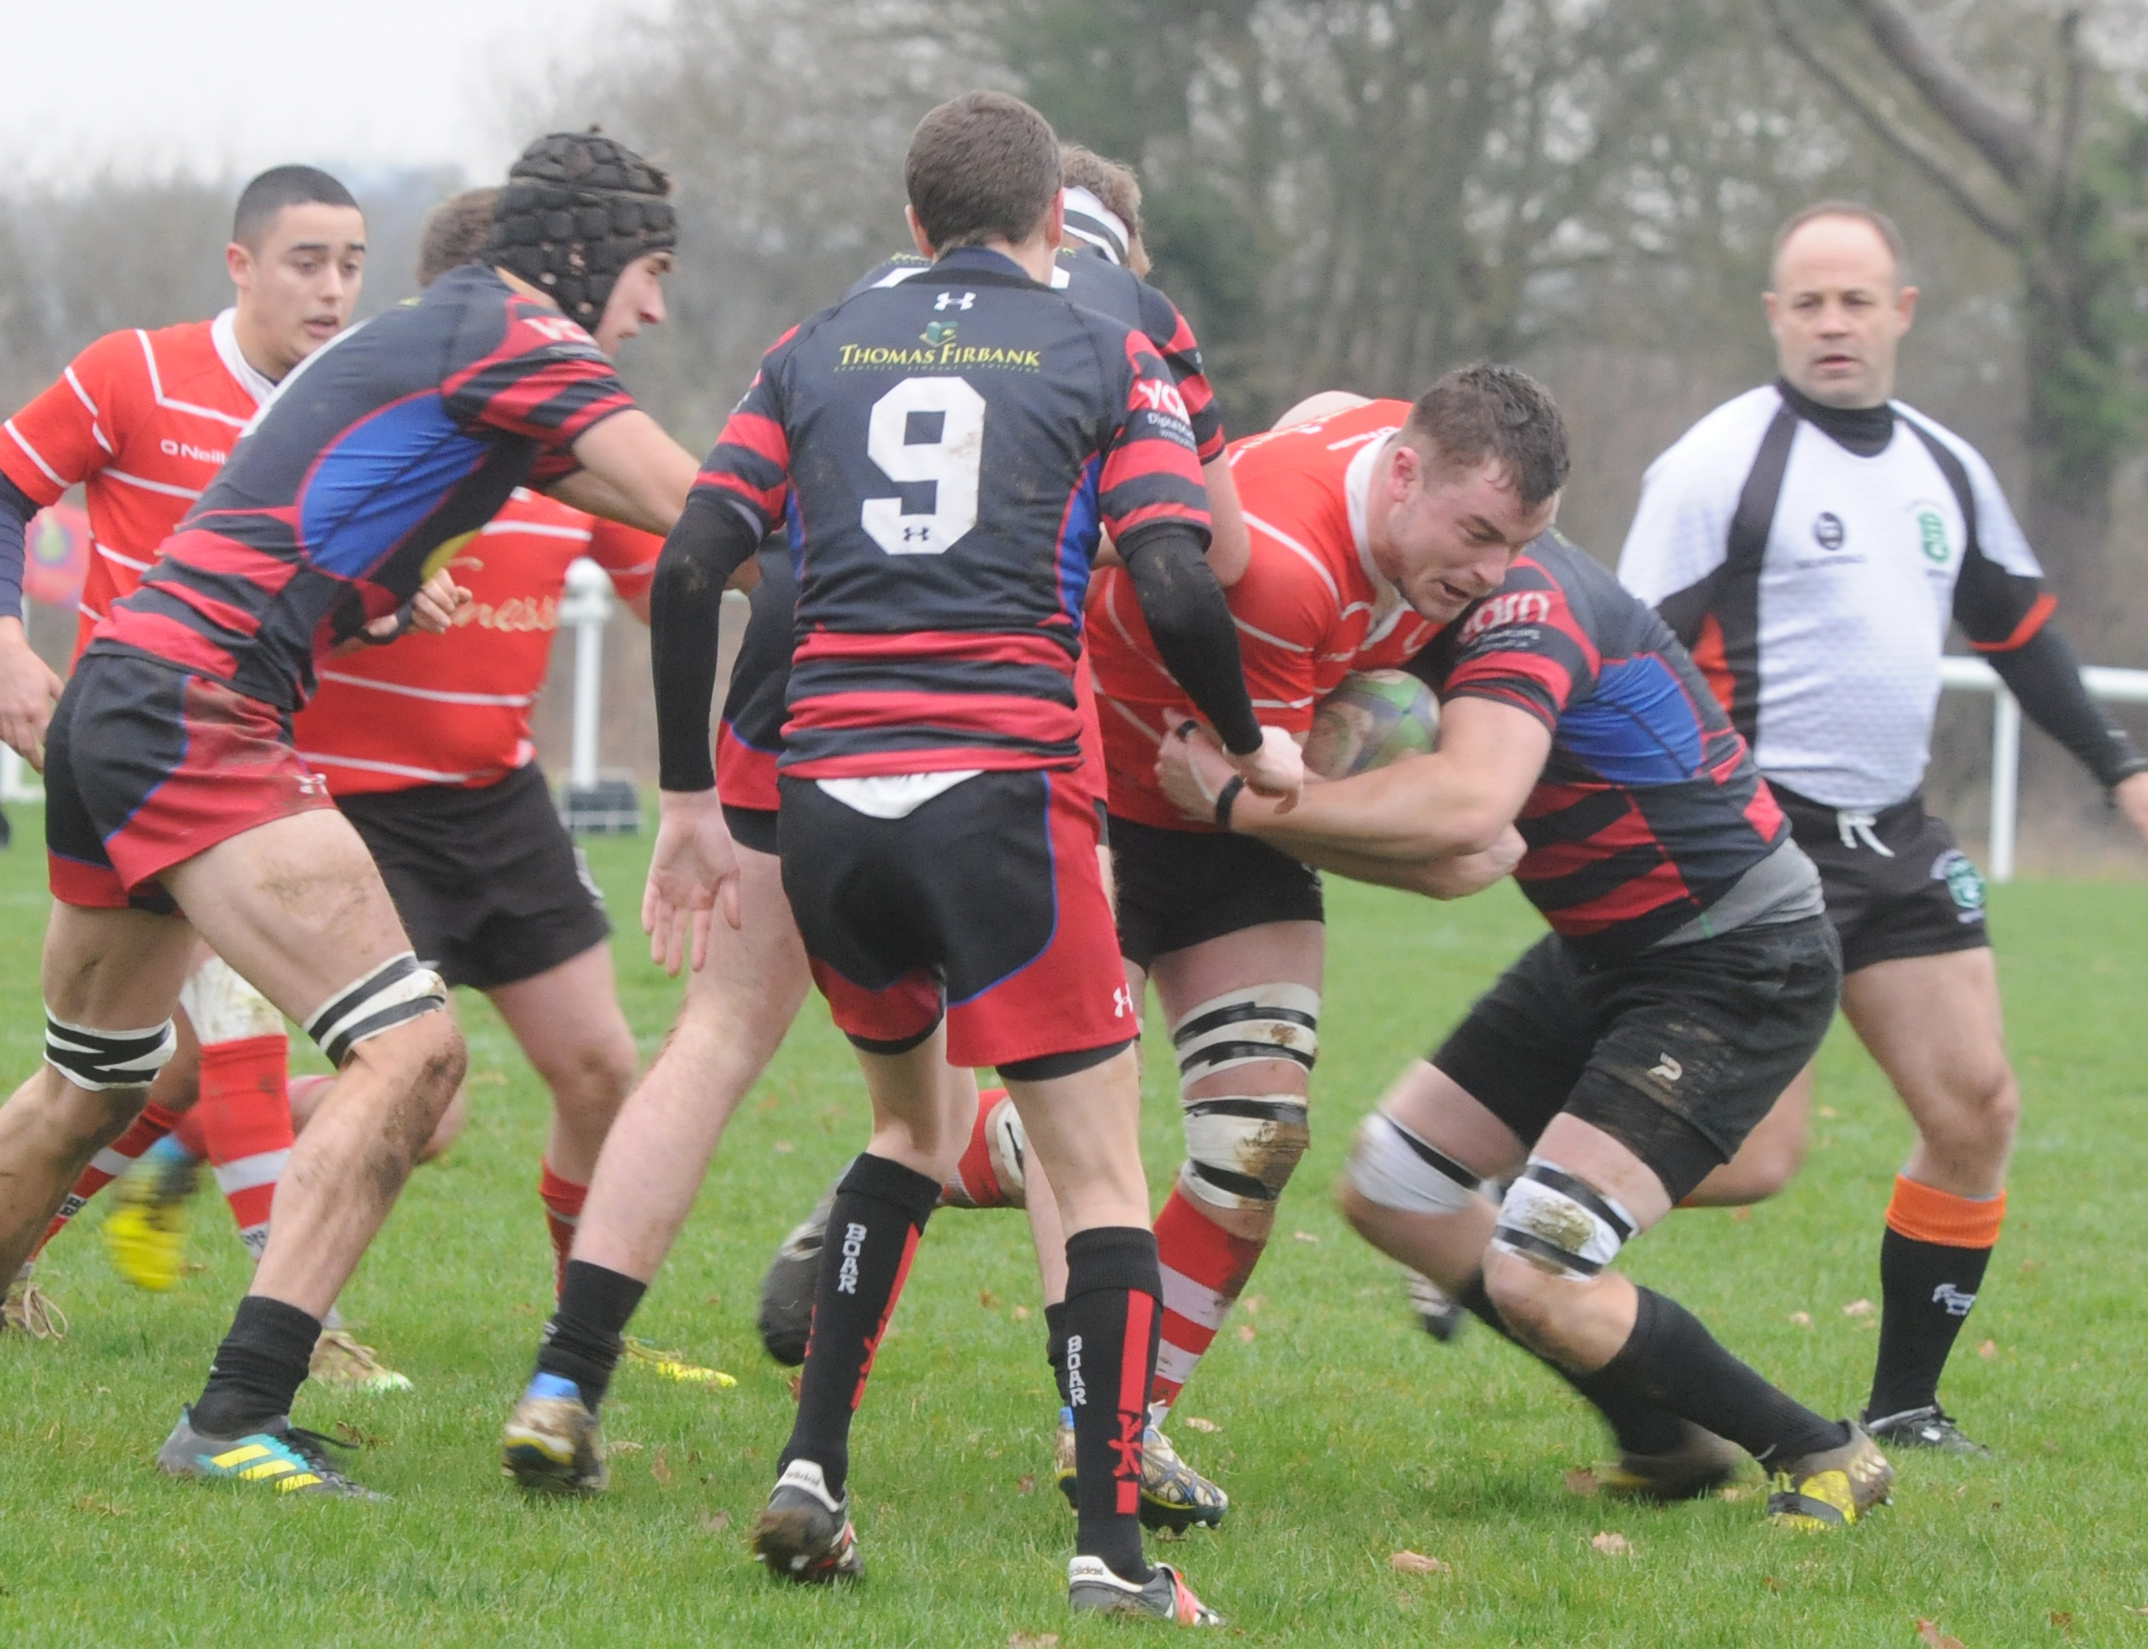 Rugby. Bradford on Avon (black) v Corsham (red). Pictured for Corsham is Will Trick  Photo: Siobhan Boyle SMB2610/13.